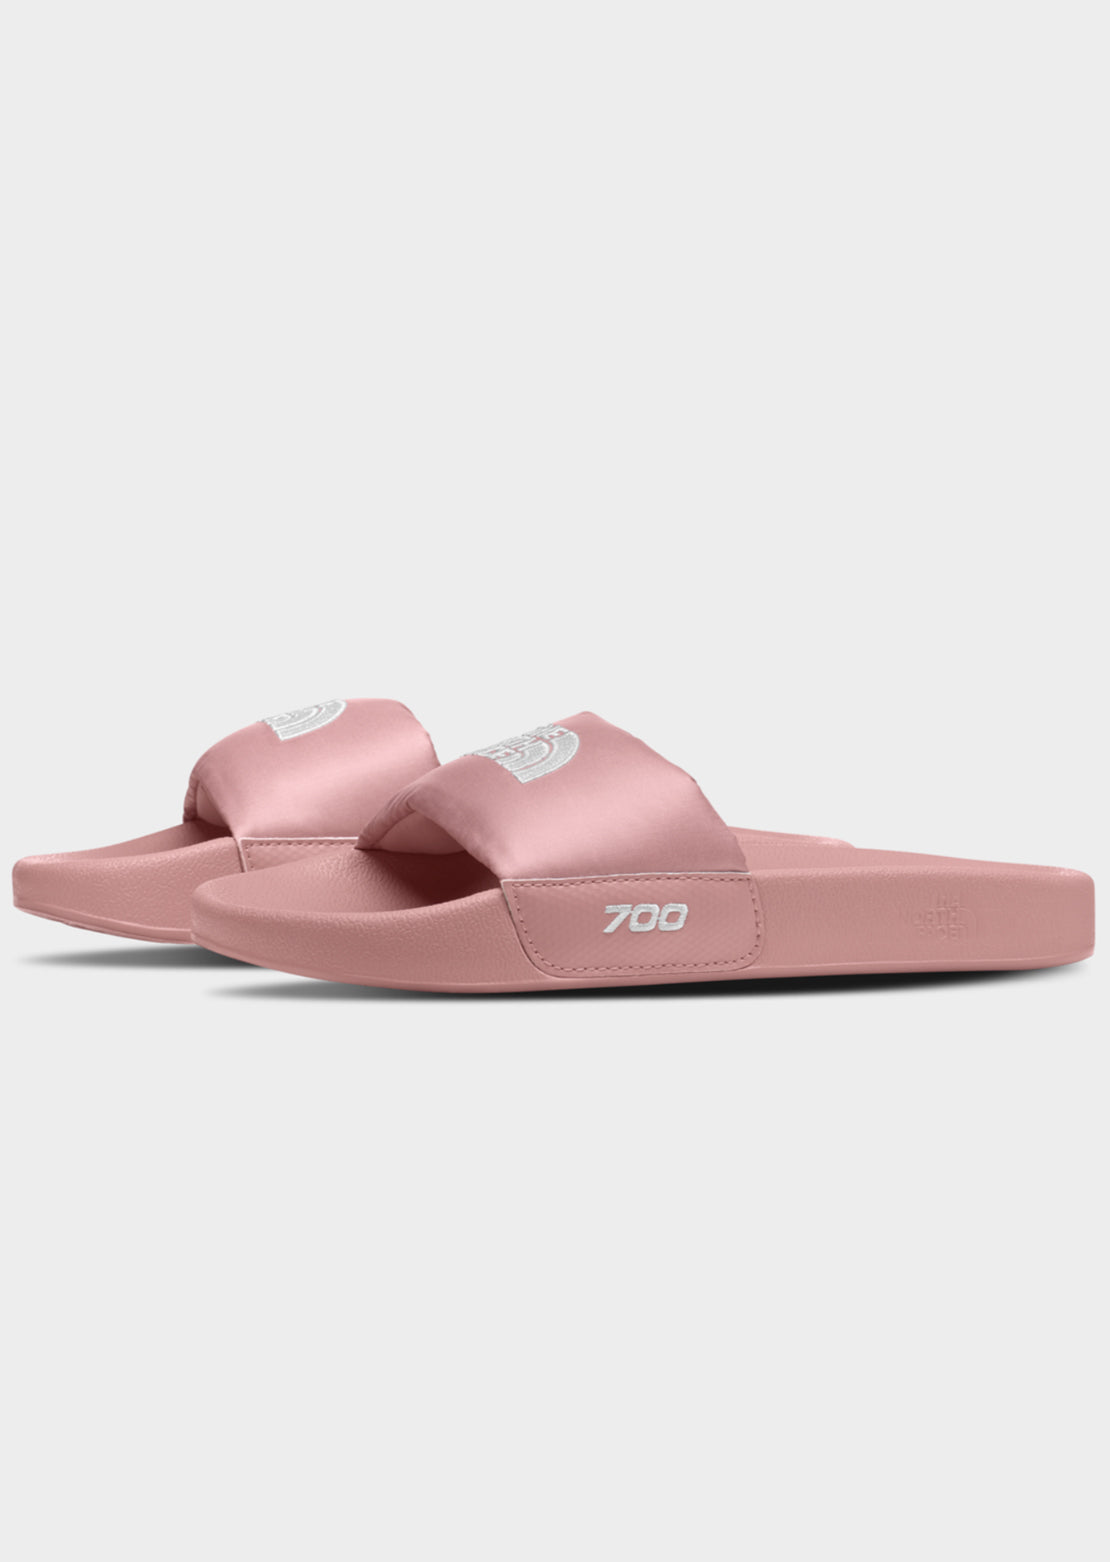 The North Face Women's Nuptse Slide Sandals Pink Clay/TNF White